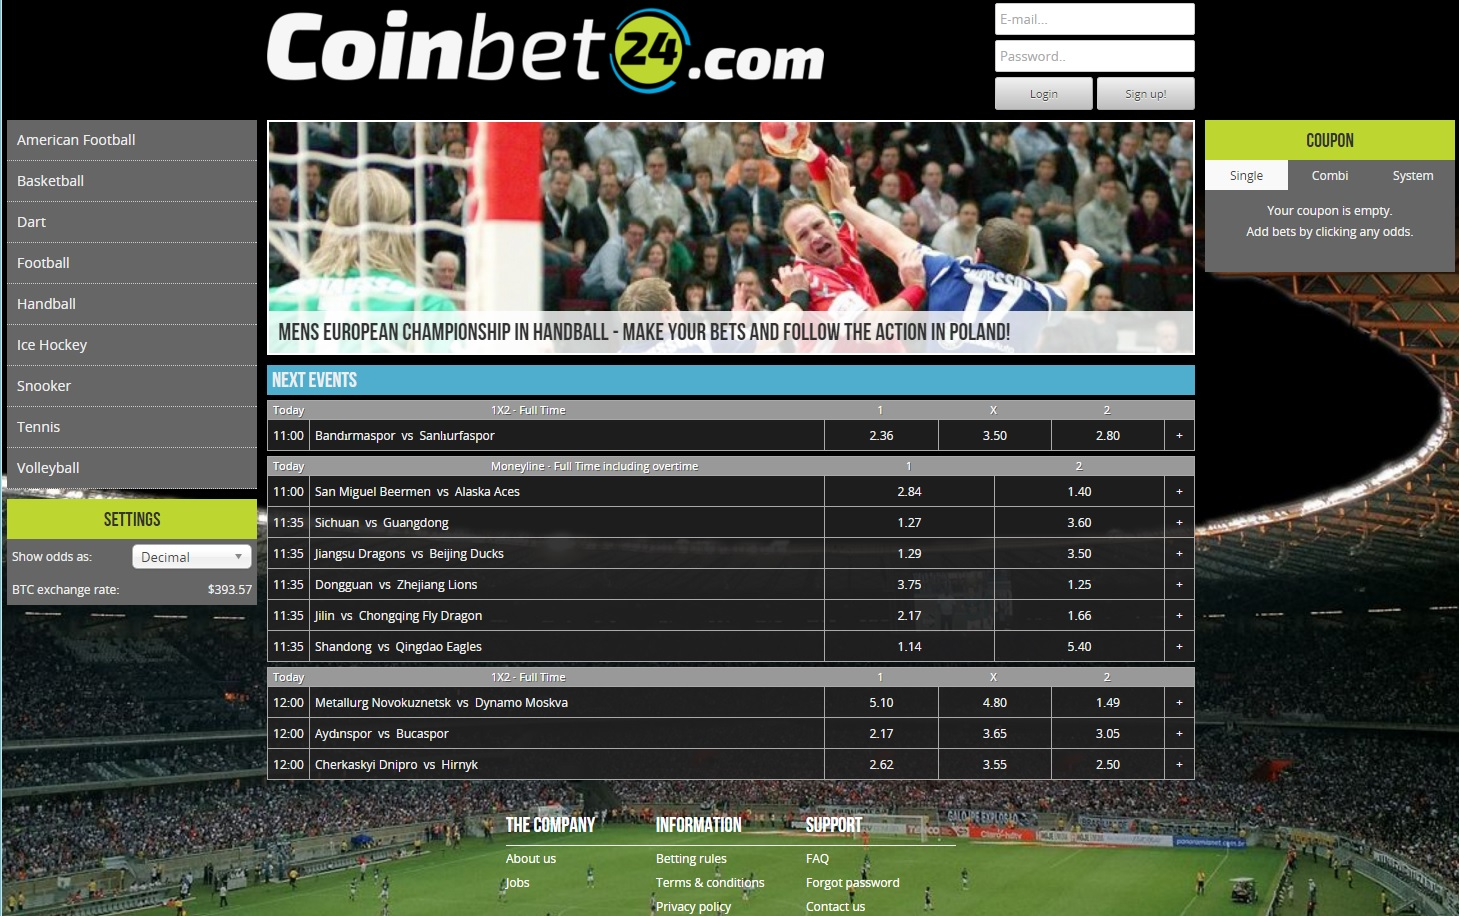 Coinbet24 screenshot